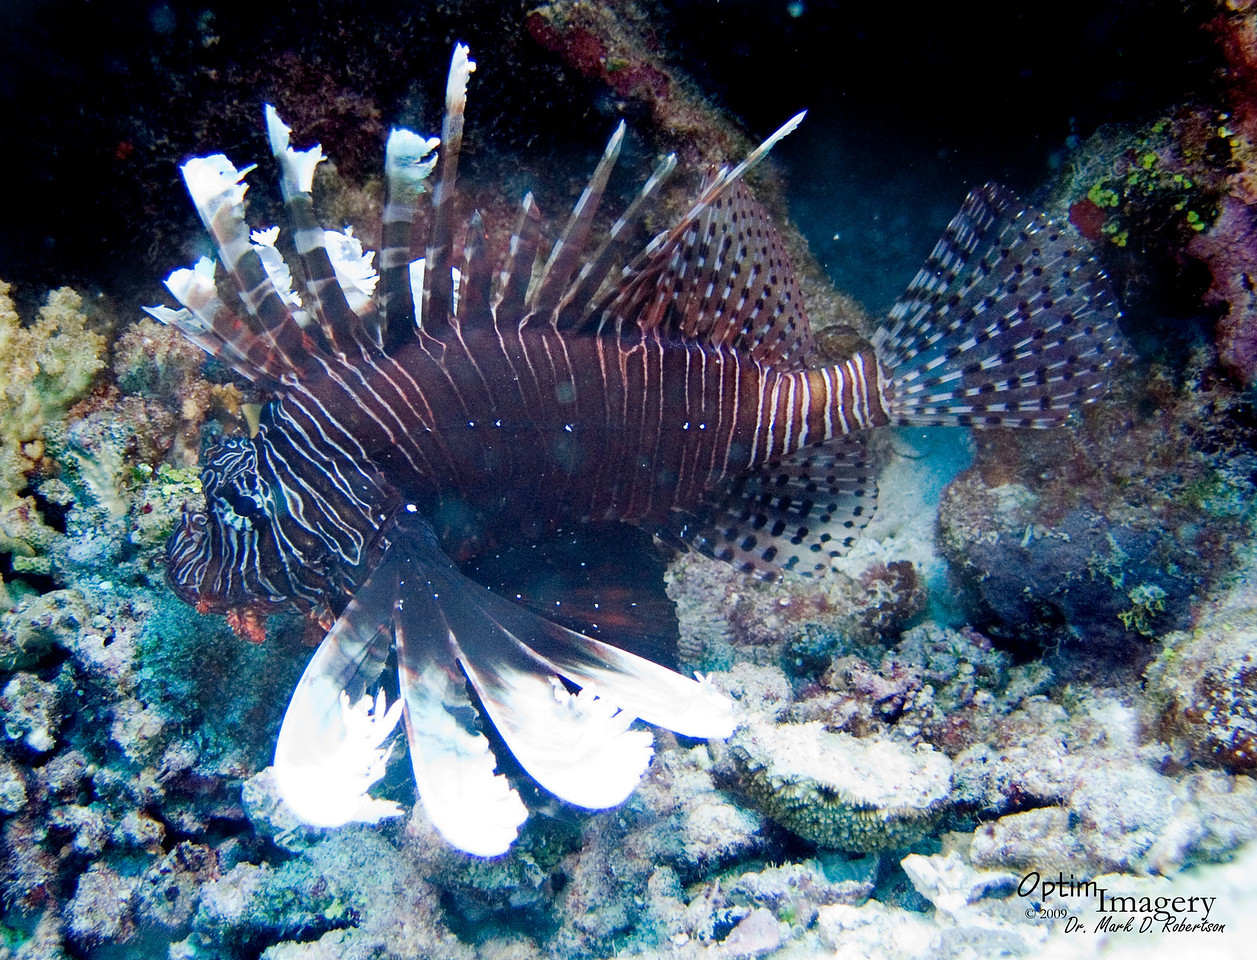 Not one of my best lionfish shots, but Rose did indeed find a nice fish!